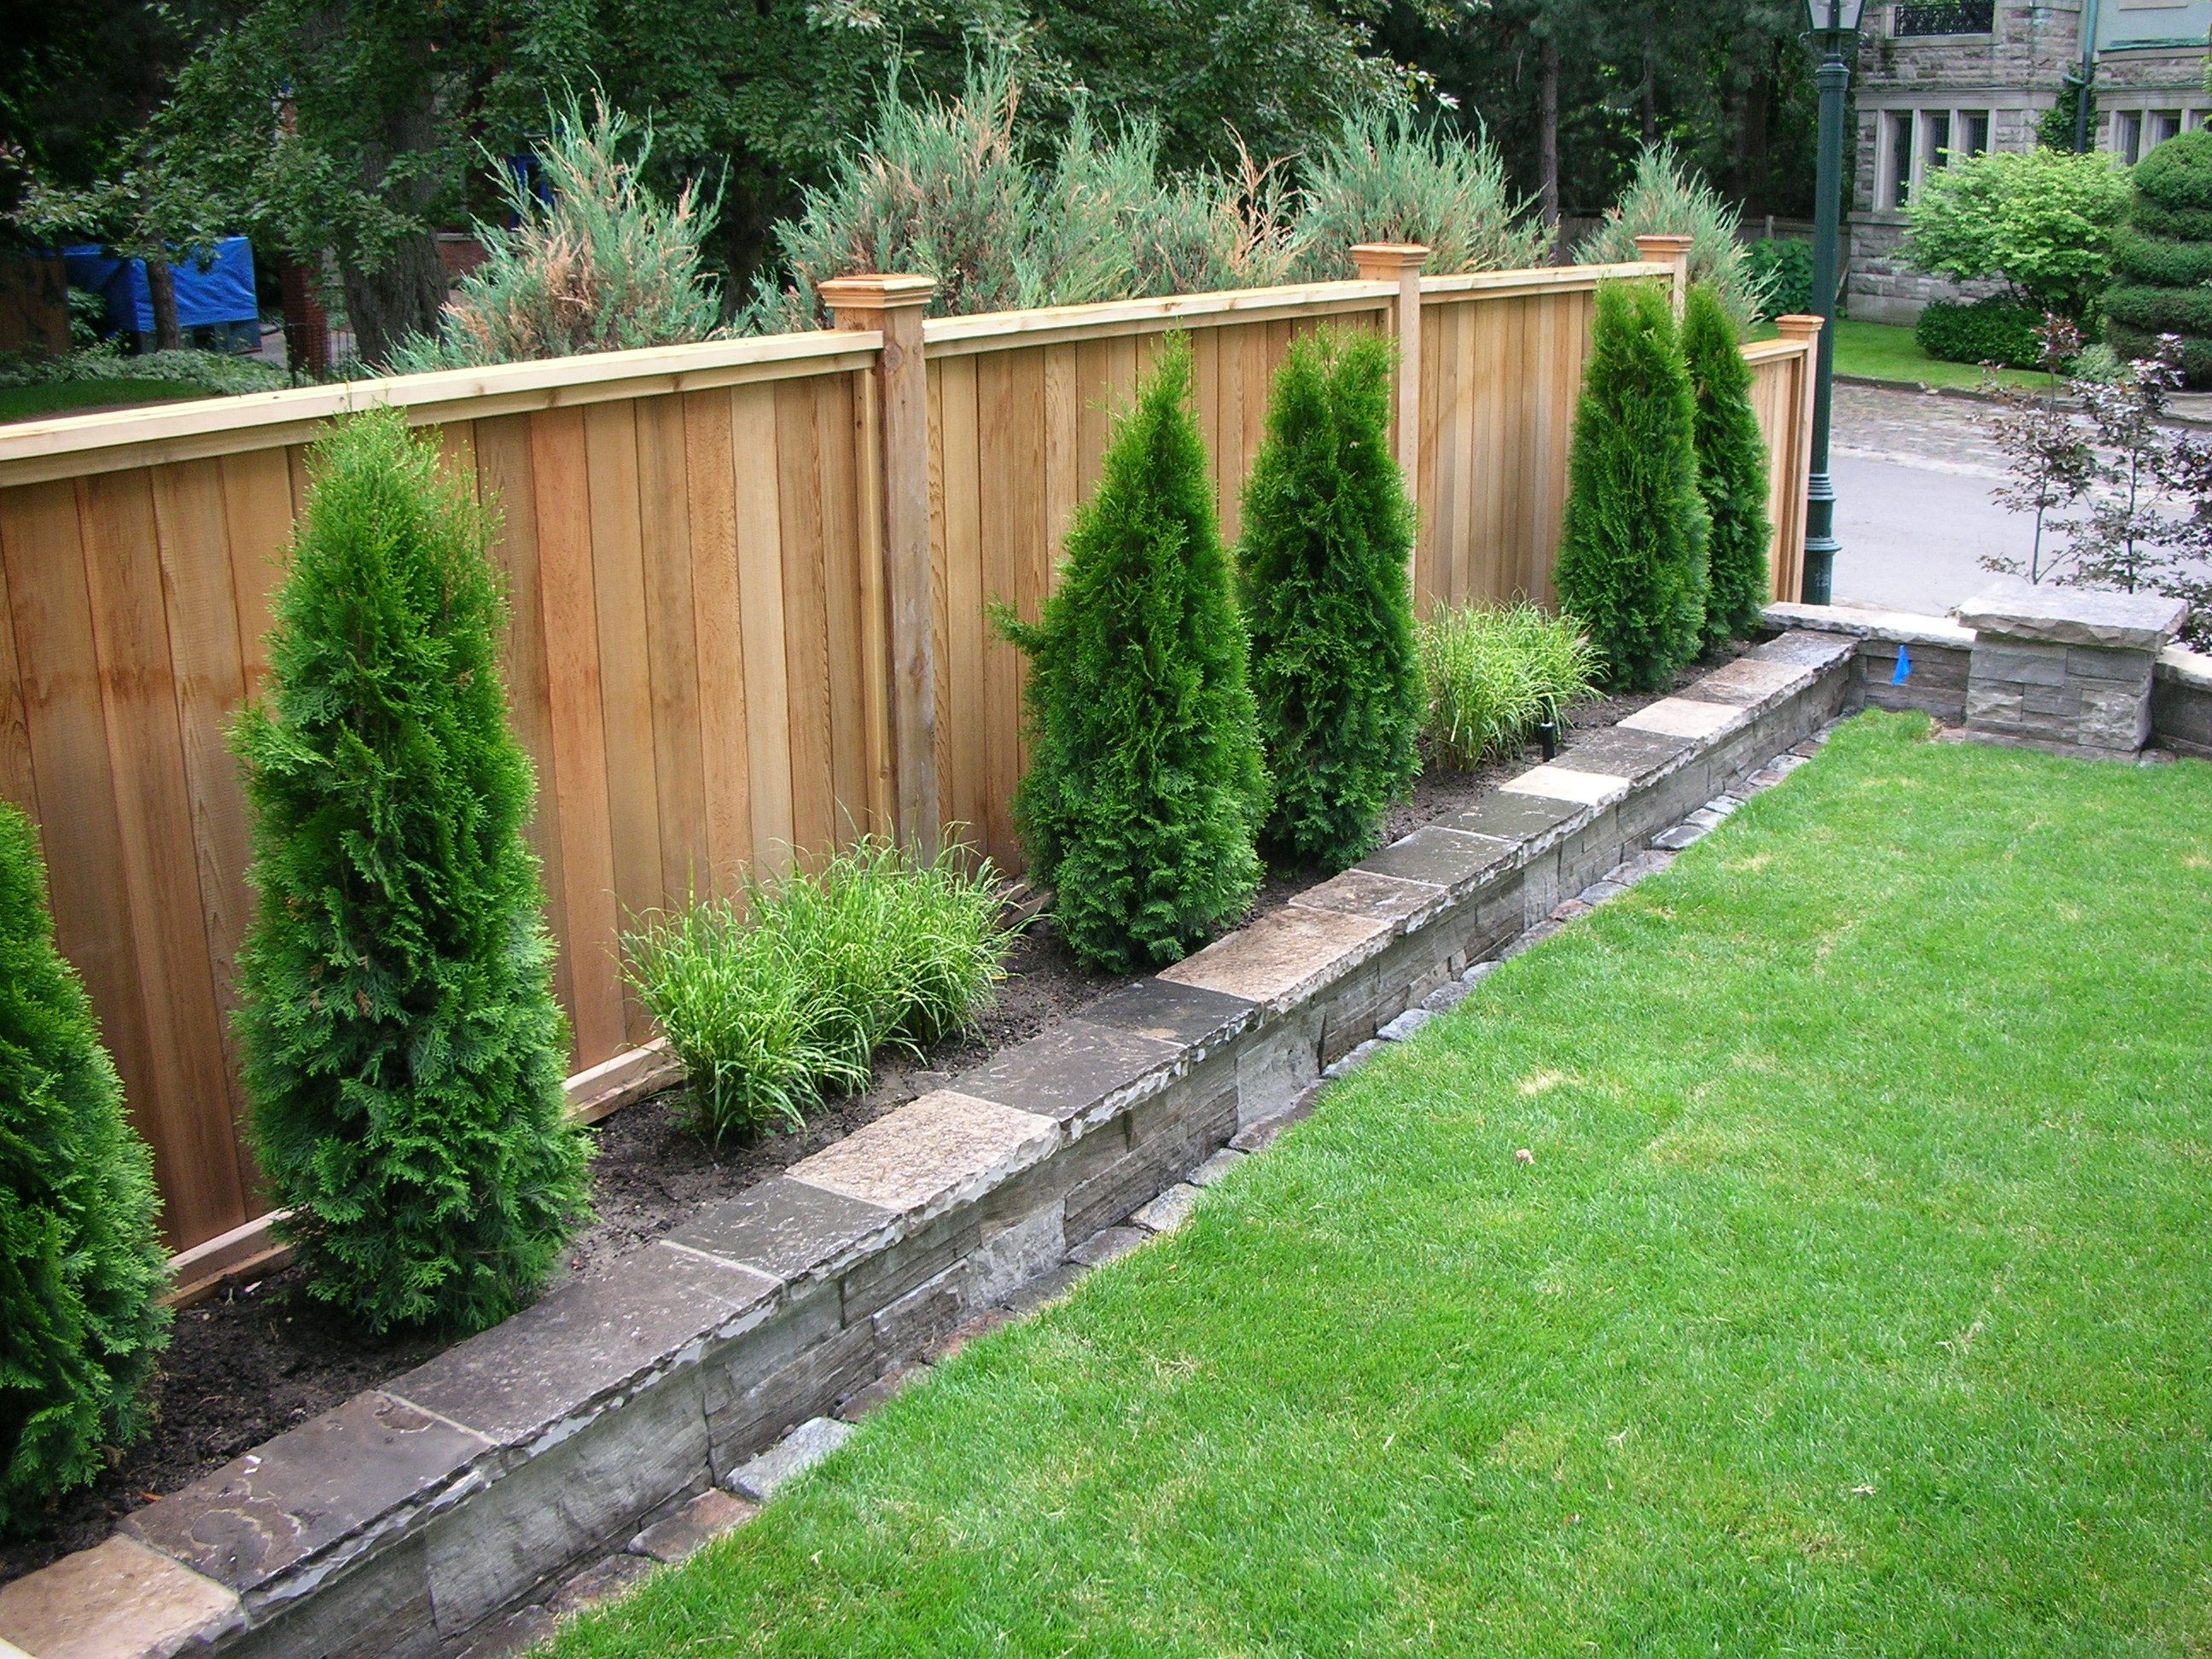 privacy fence ideas for backyard collection here home decoration backyard fencing privacy fence fence at backyard my wonder garden